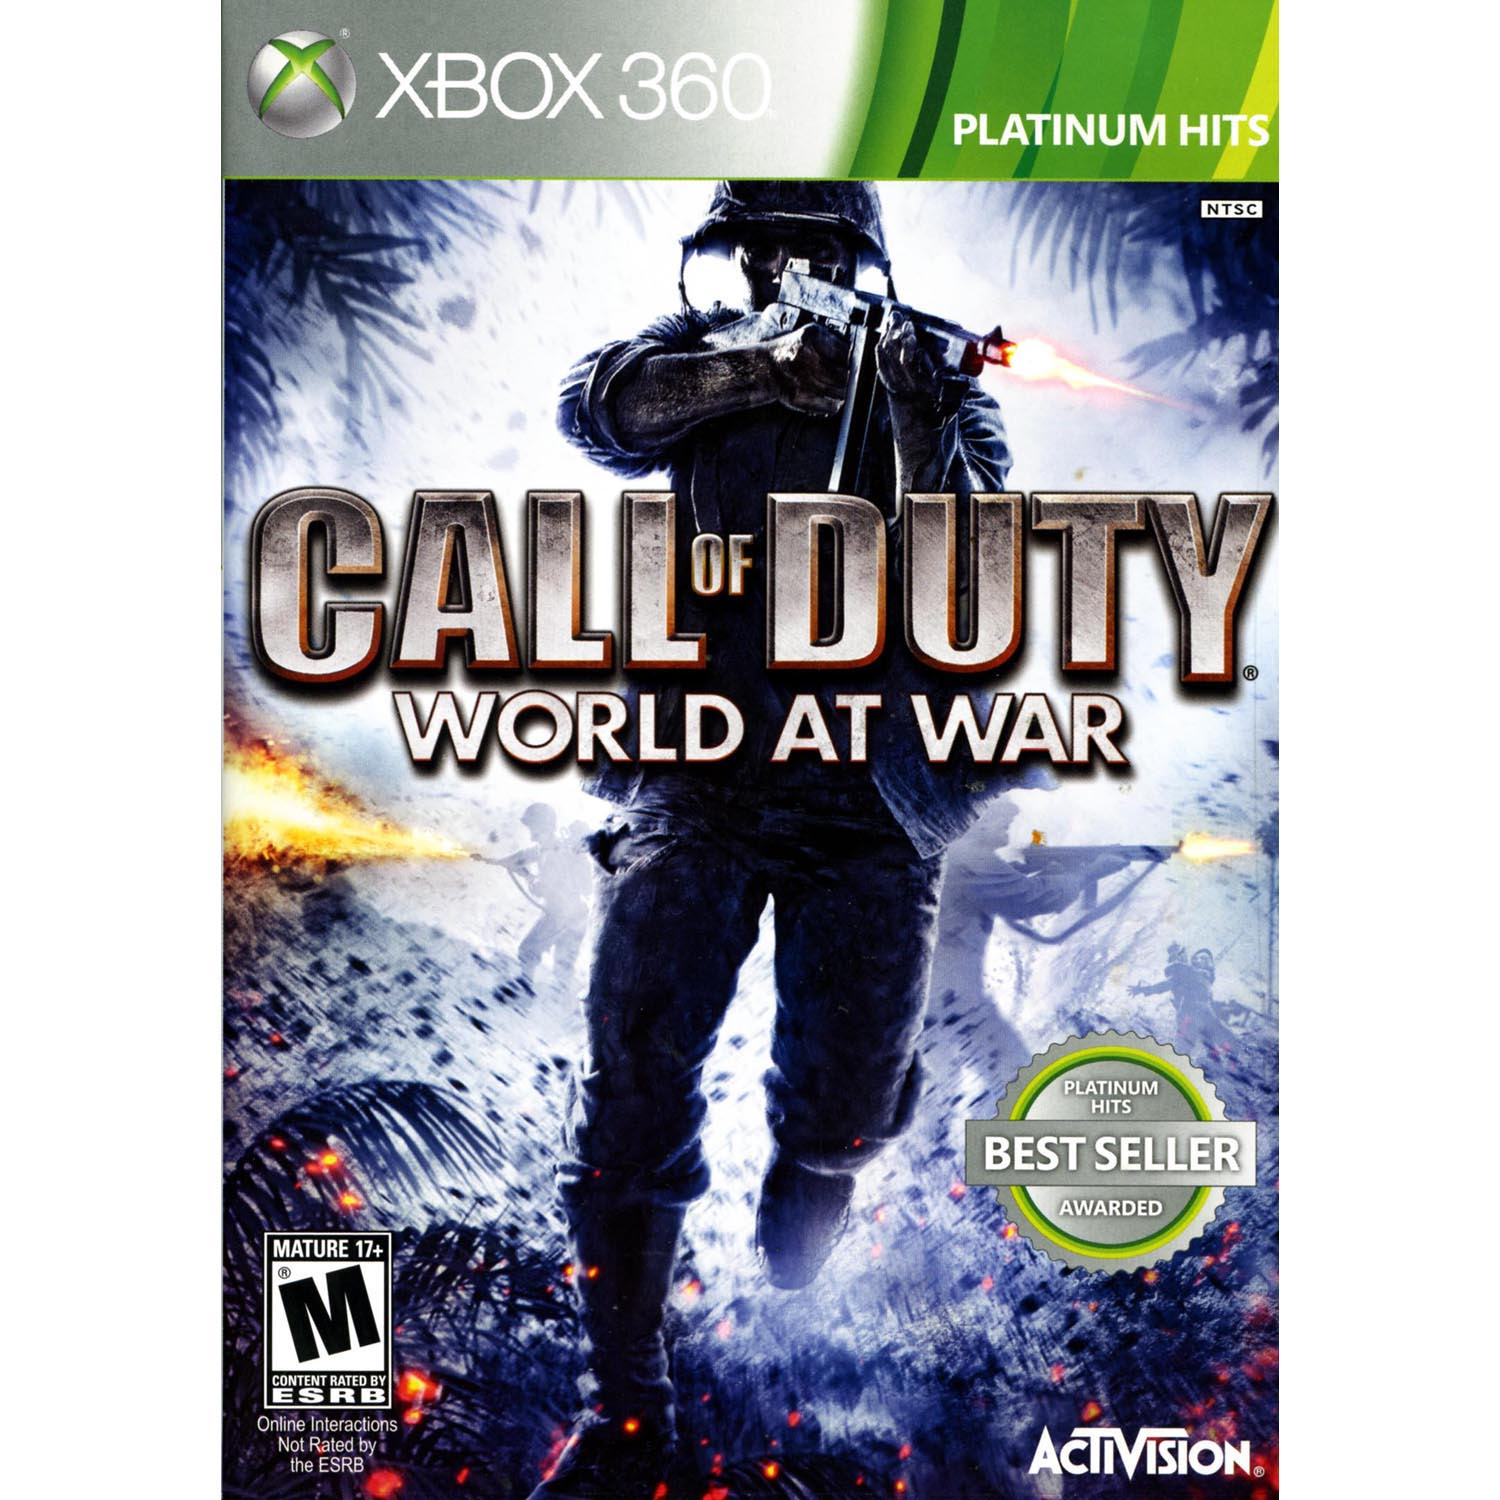 Video Games ETC! Call of Duty World At War Backwards Compatible, Activision,...